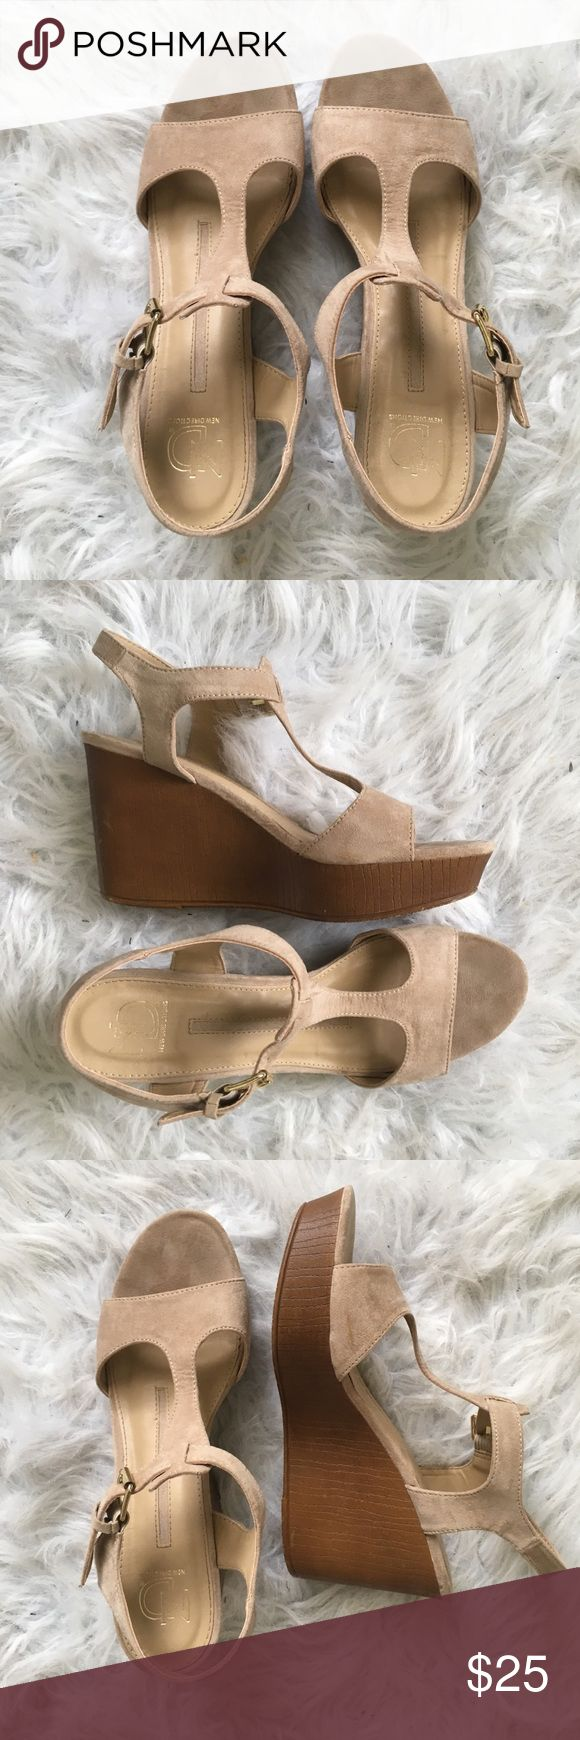 Beige Wedges Only worn once for my sorority initiation! Macy's Shoes Wedges